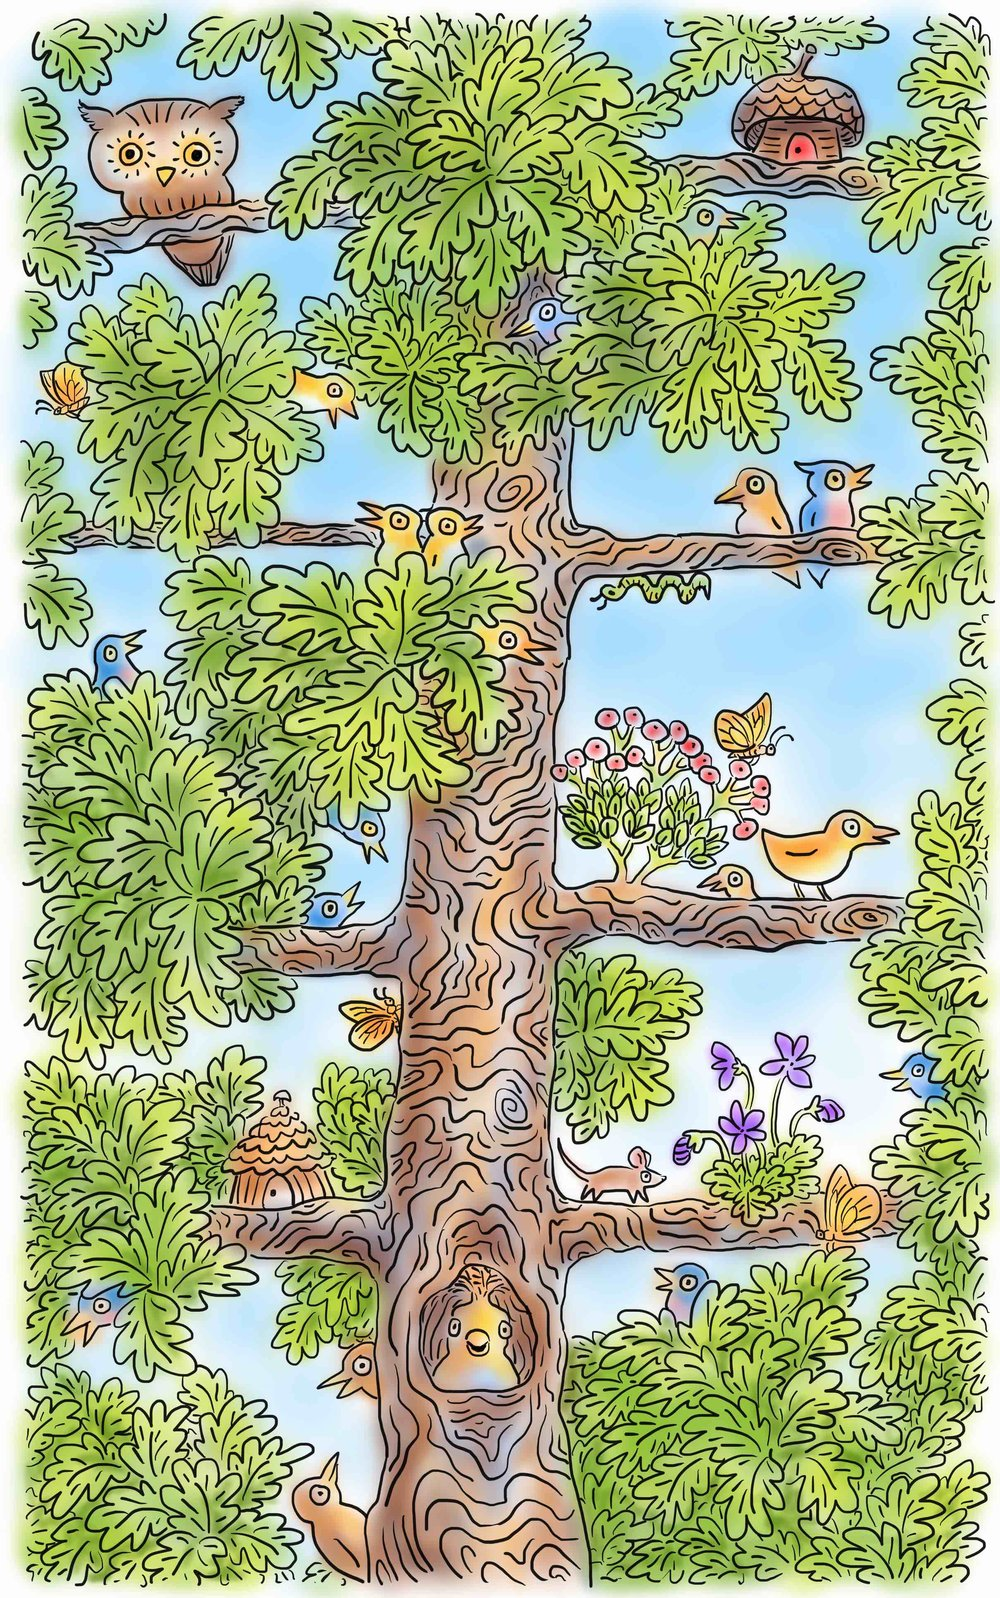 oak tree birds 3.jpeg